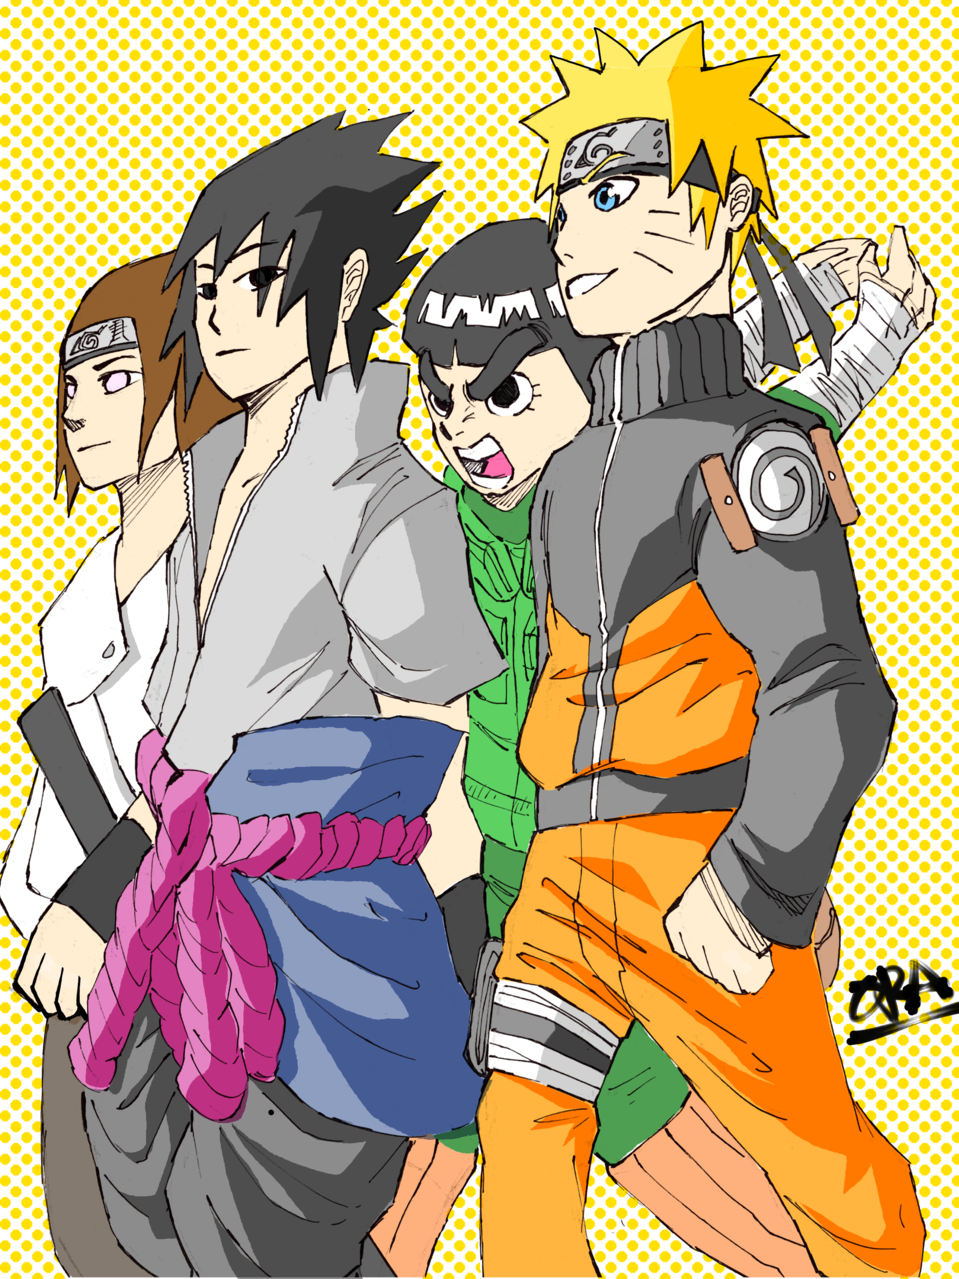 Naruto Chilling with his friends Illust of That One Panda tracedrawing4th Trace&Draw【Official】 medibangpaint anime NARUTO